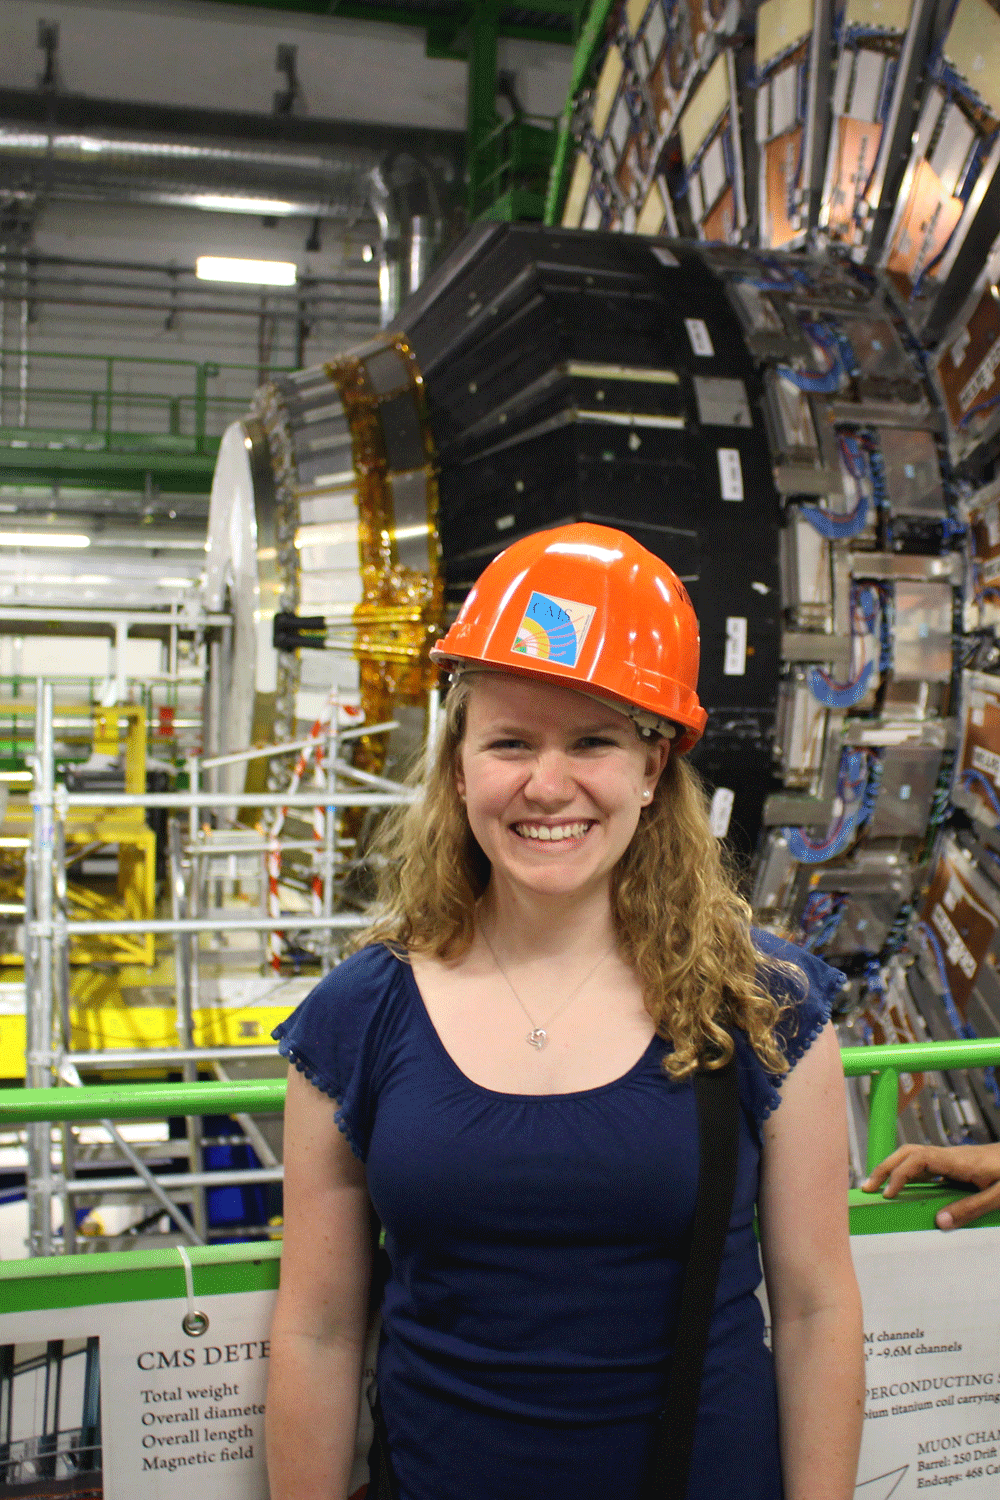 The author Allison Reinsvold in front of the CMS detector at CERN. Photo: CERN